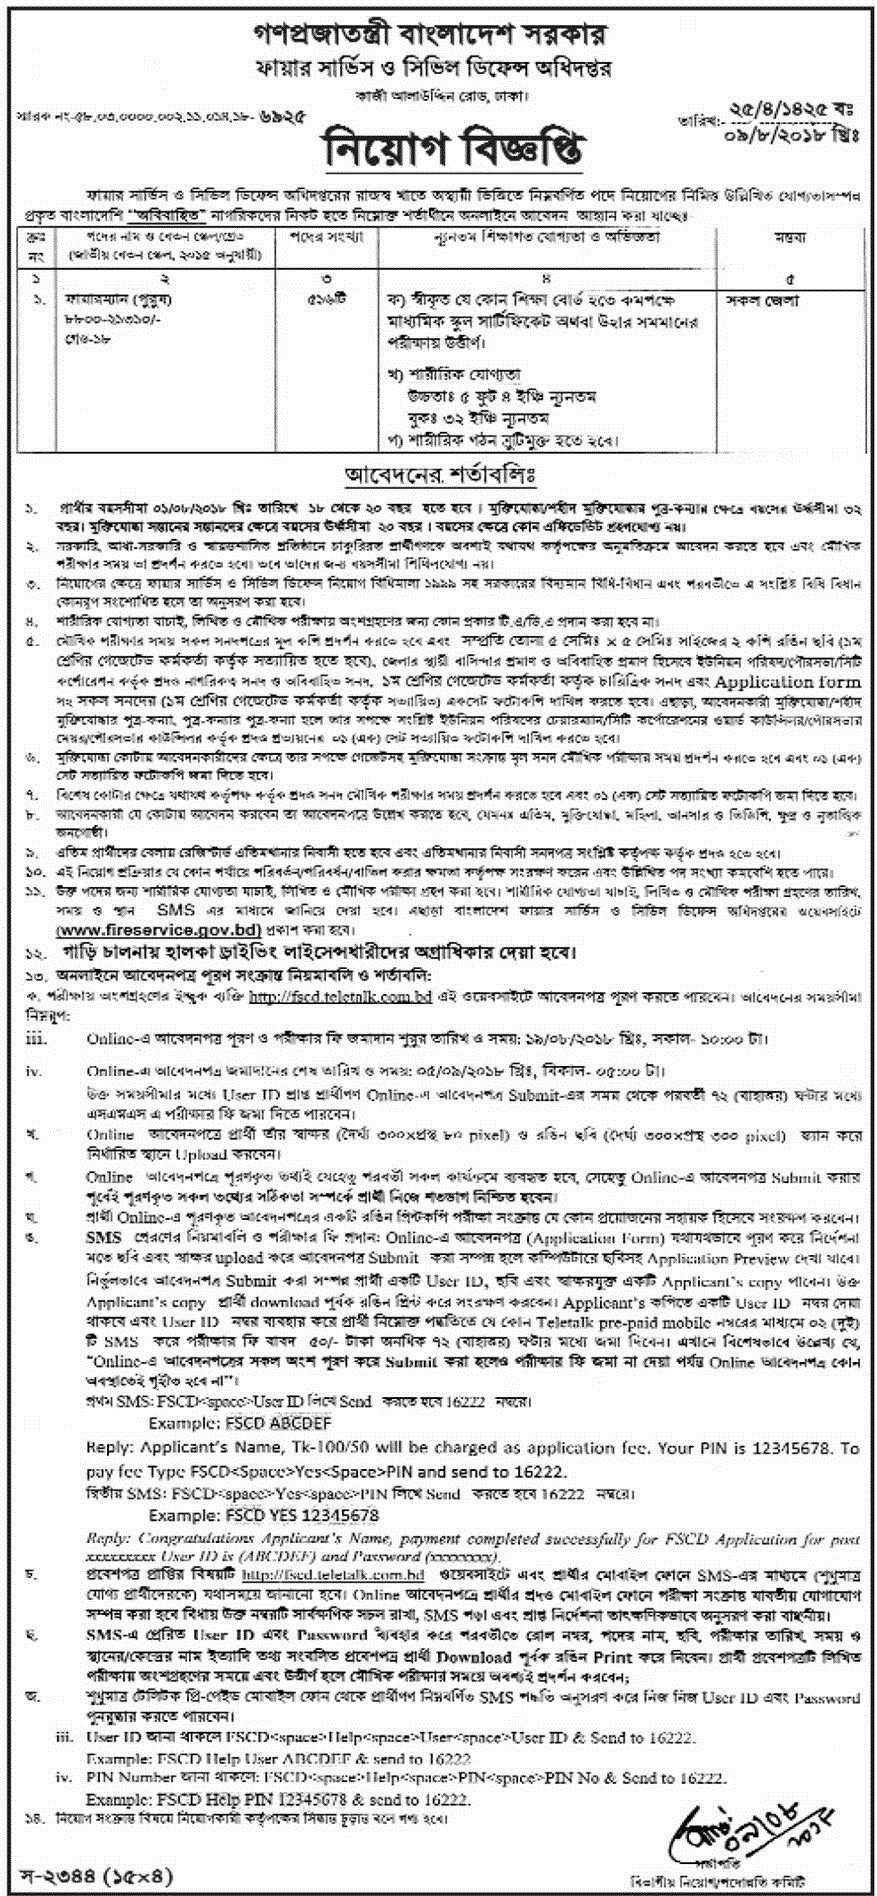 Fire Service and Civil Defense Job Circular 2018